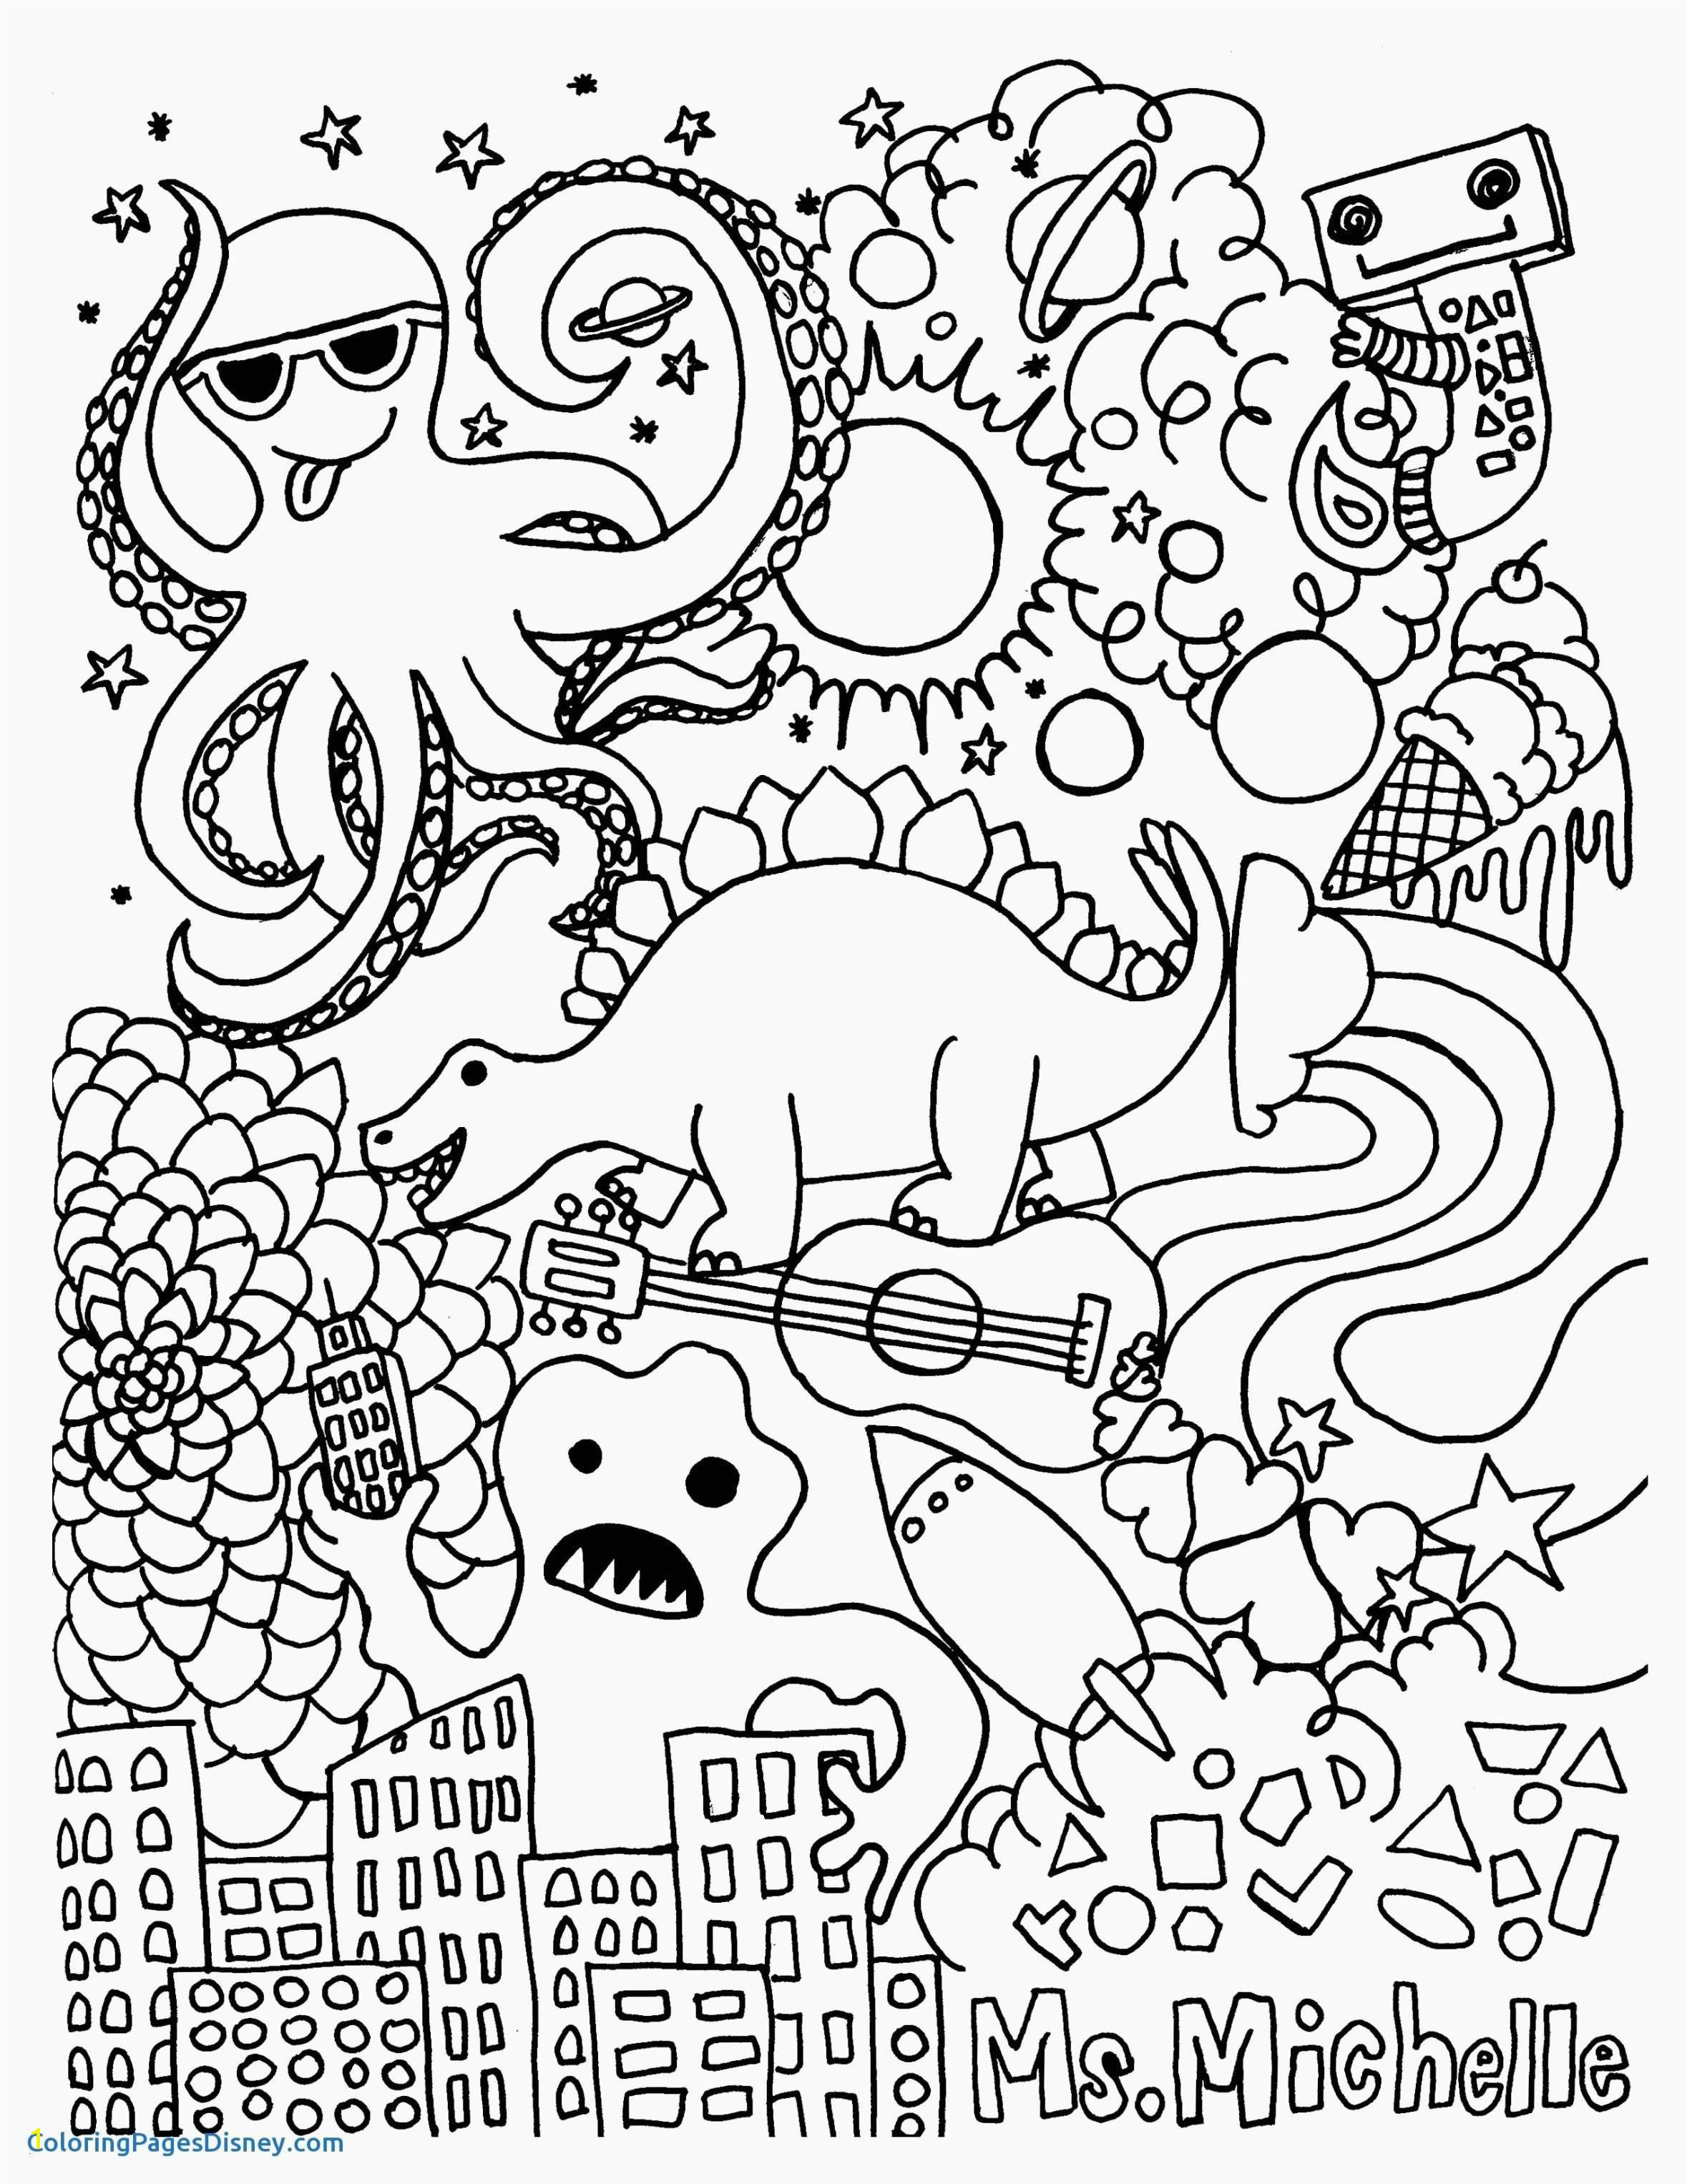 Printable Owl Coloring Pages Luxury 57 Extraordinay Owl Coloring Pages to Print Dannerchonoles Printable Owl